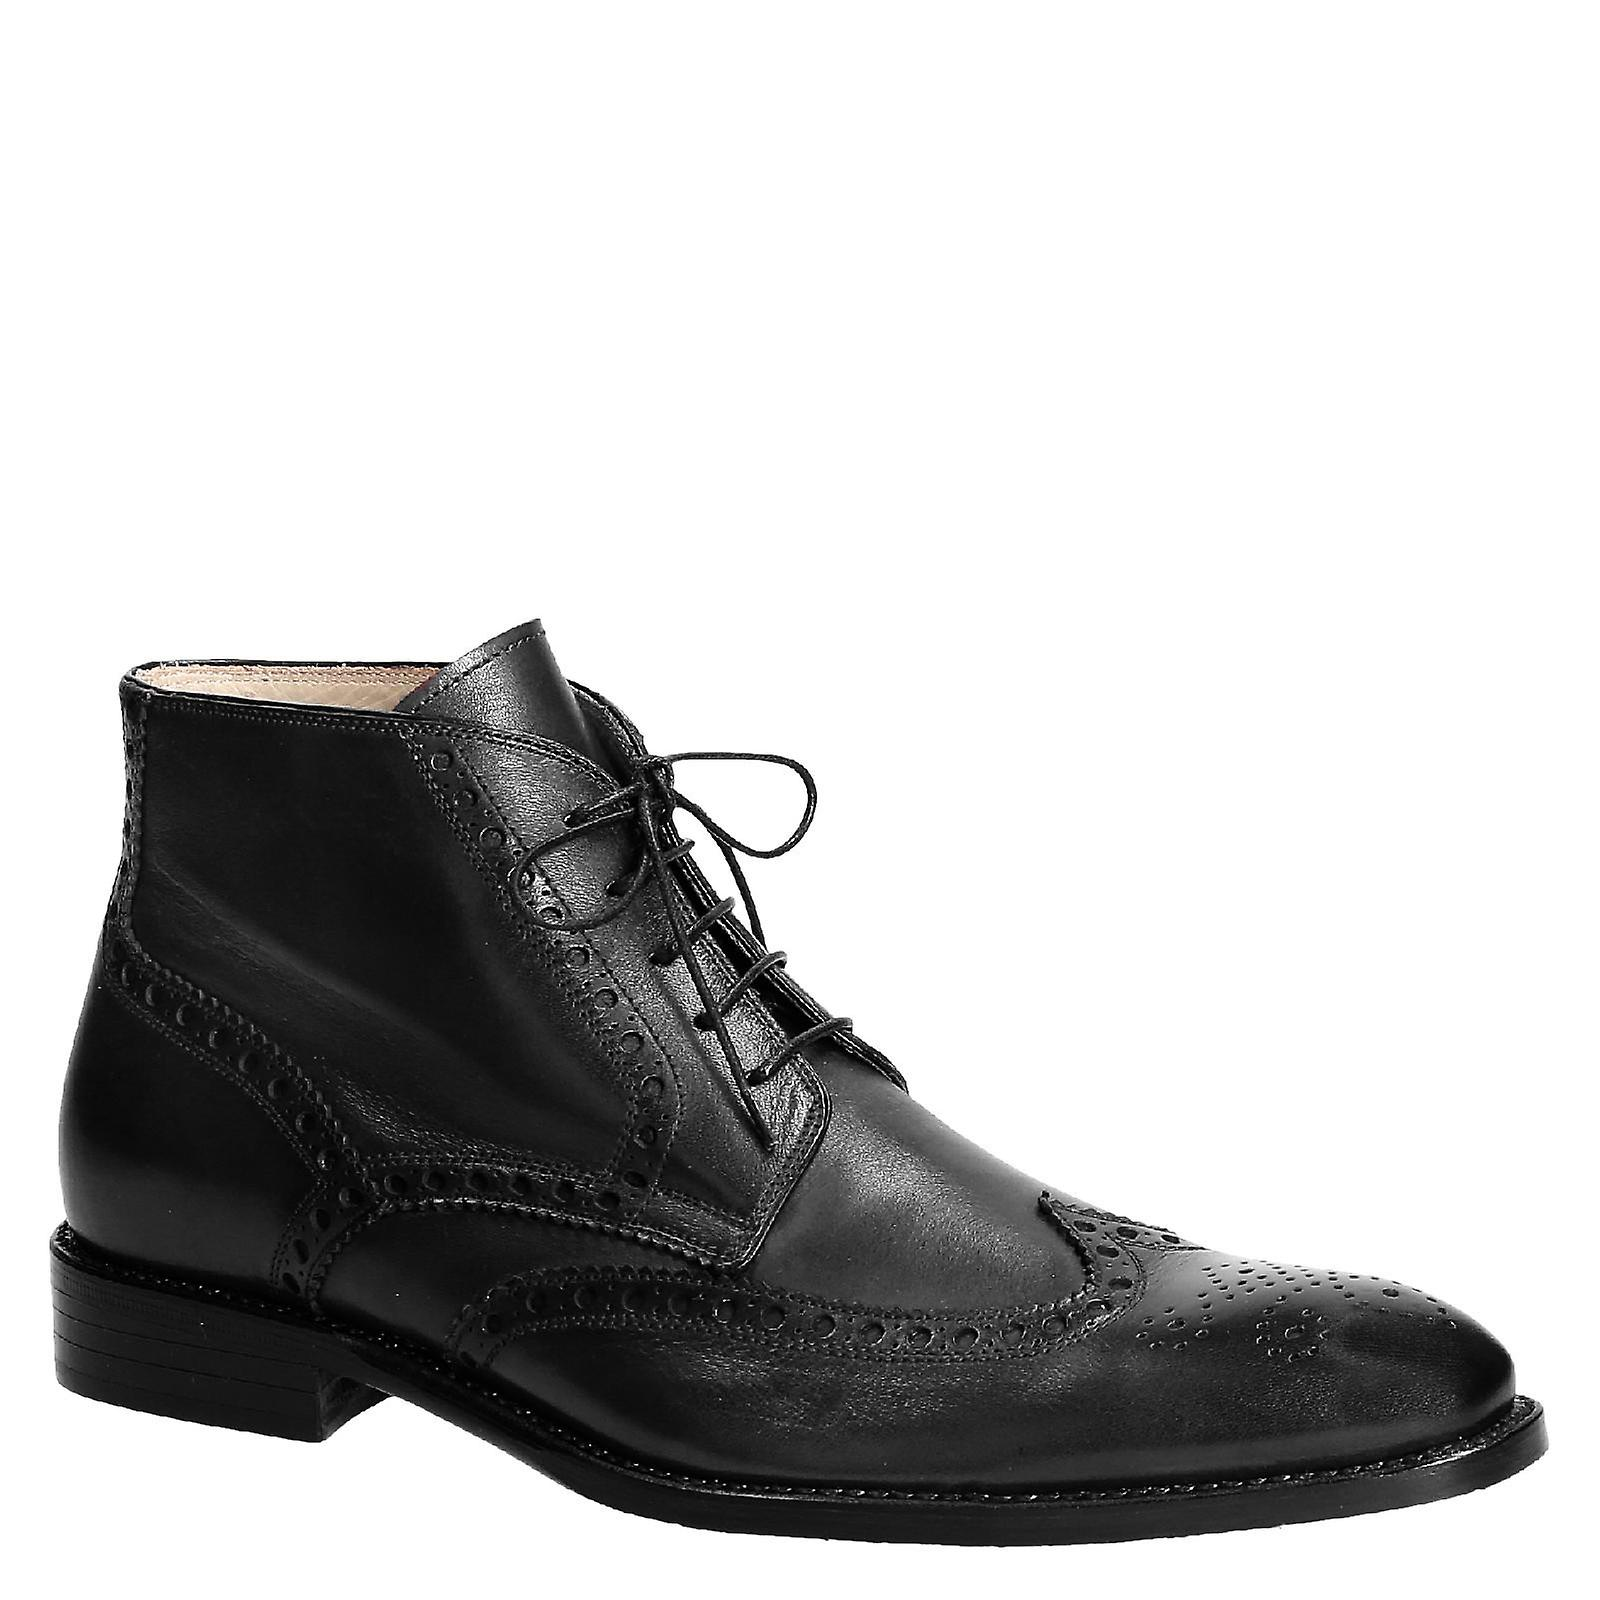 Handmade dress ankle boots for leather men in black leather for e2ba99